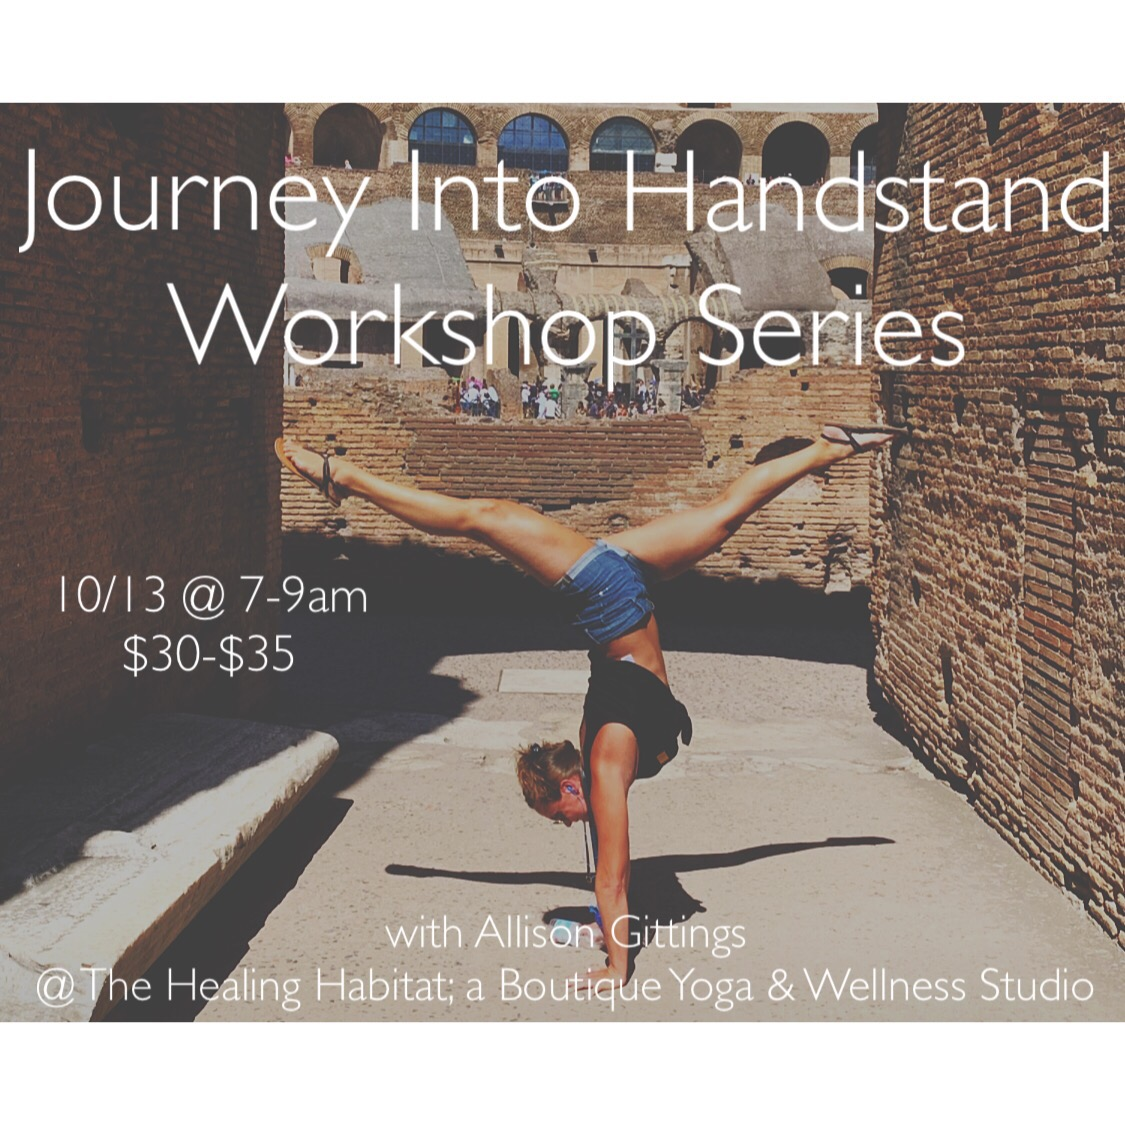 Journey Into Handstand Workshop Series - 10/ 13 @ 7-9am$30-$35Joining us from Core Power Yoga of D.C, Allison Gittings, a FAVORITE for our Habitat community, returns to lead us through a challenging but accessible two hour Handstand Vinyasa Flow with hands on assistance, demonstrations, drills and technique training to develop all levels of tenacious practitioners. Expect to feel challenged, supported and playful during this class and enjoy feeling strong and energetic in community.